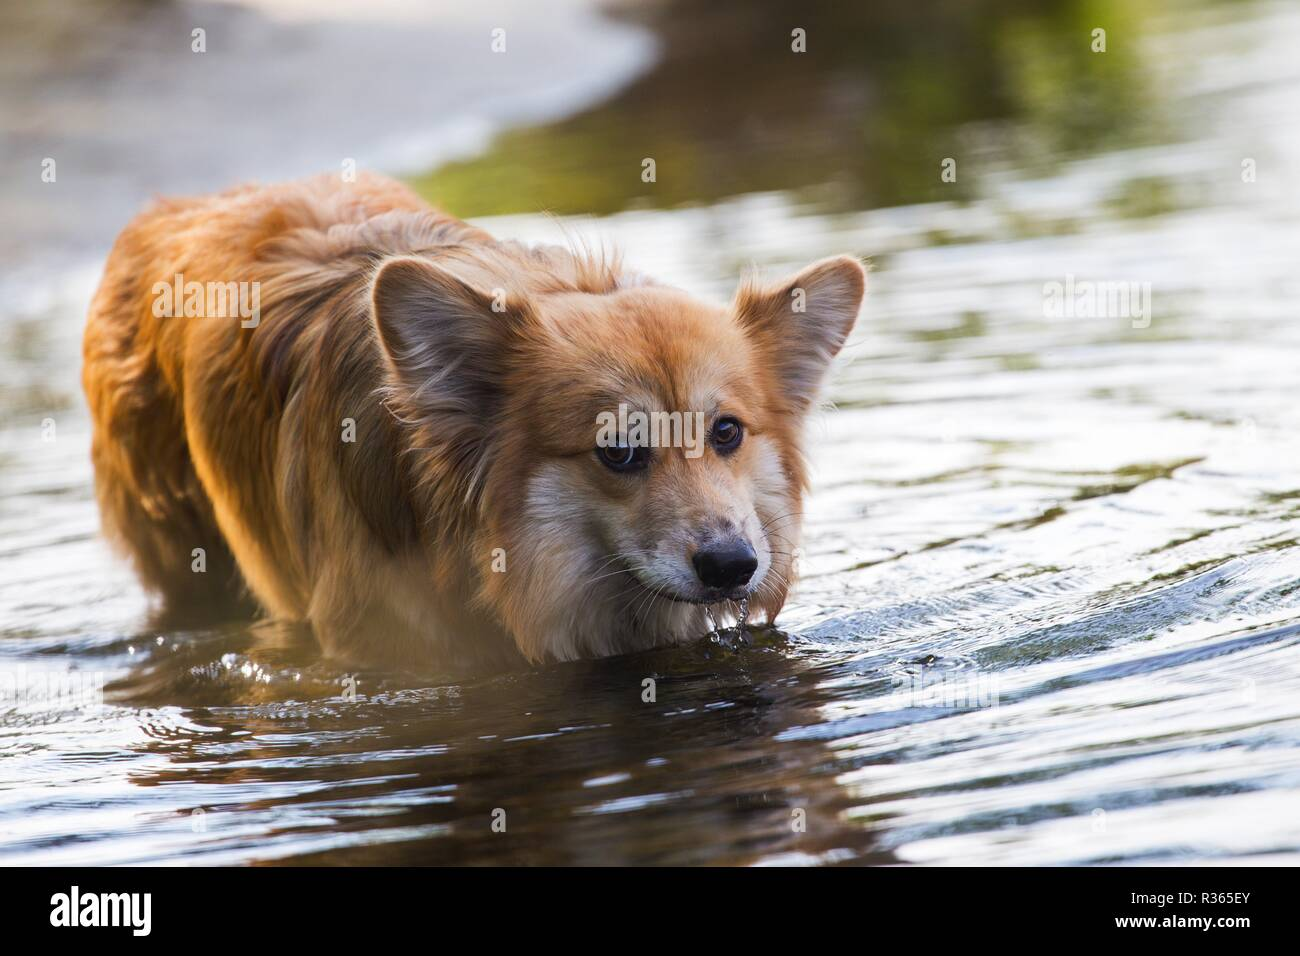 beautiful corgi fluffy close up portrait at the outdoor. Summer - Stock Image